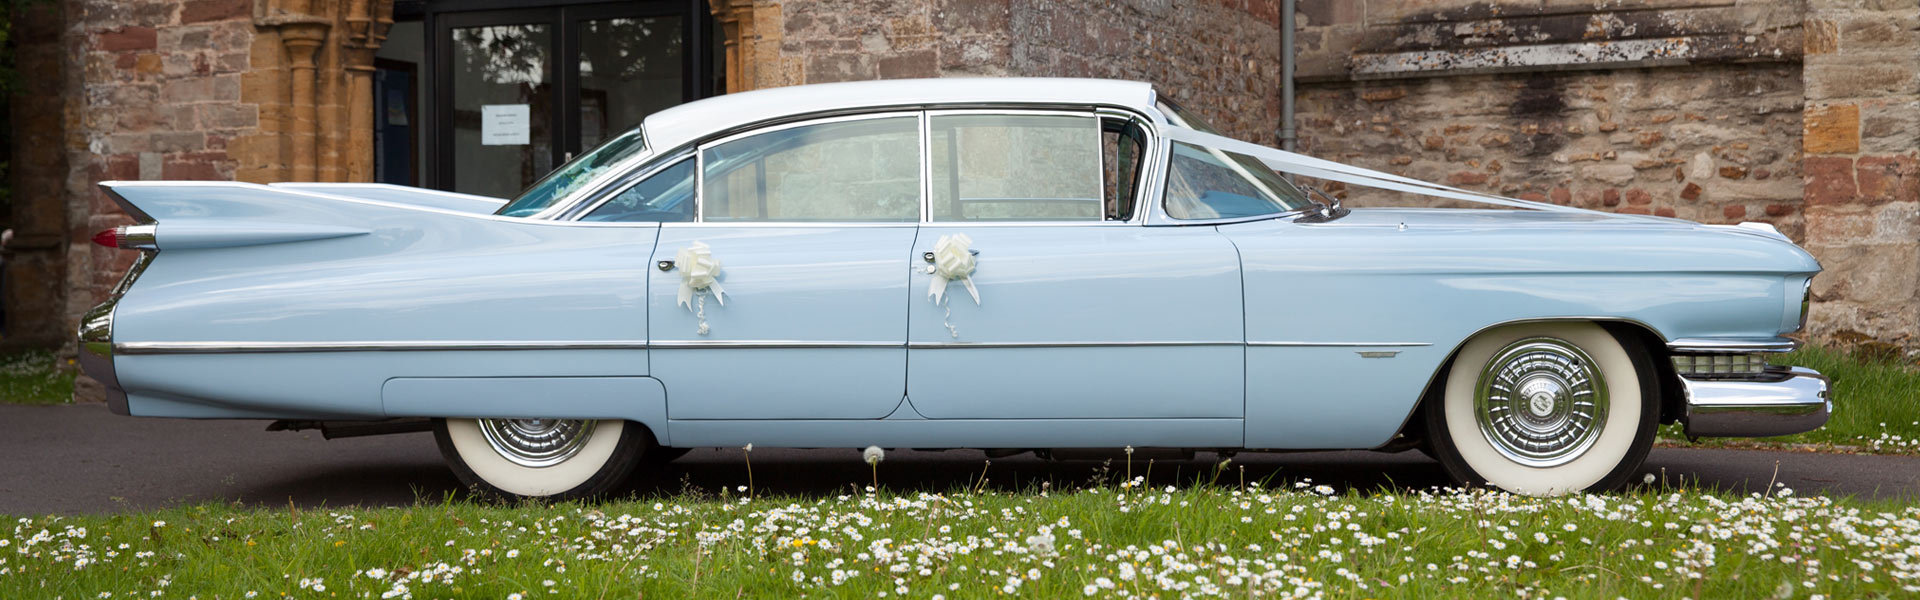 Wedding Cars Somerset, Wedding Cars Devon, American Wedding Cars